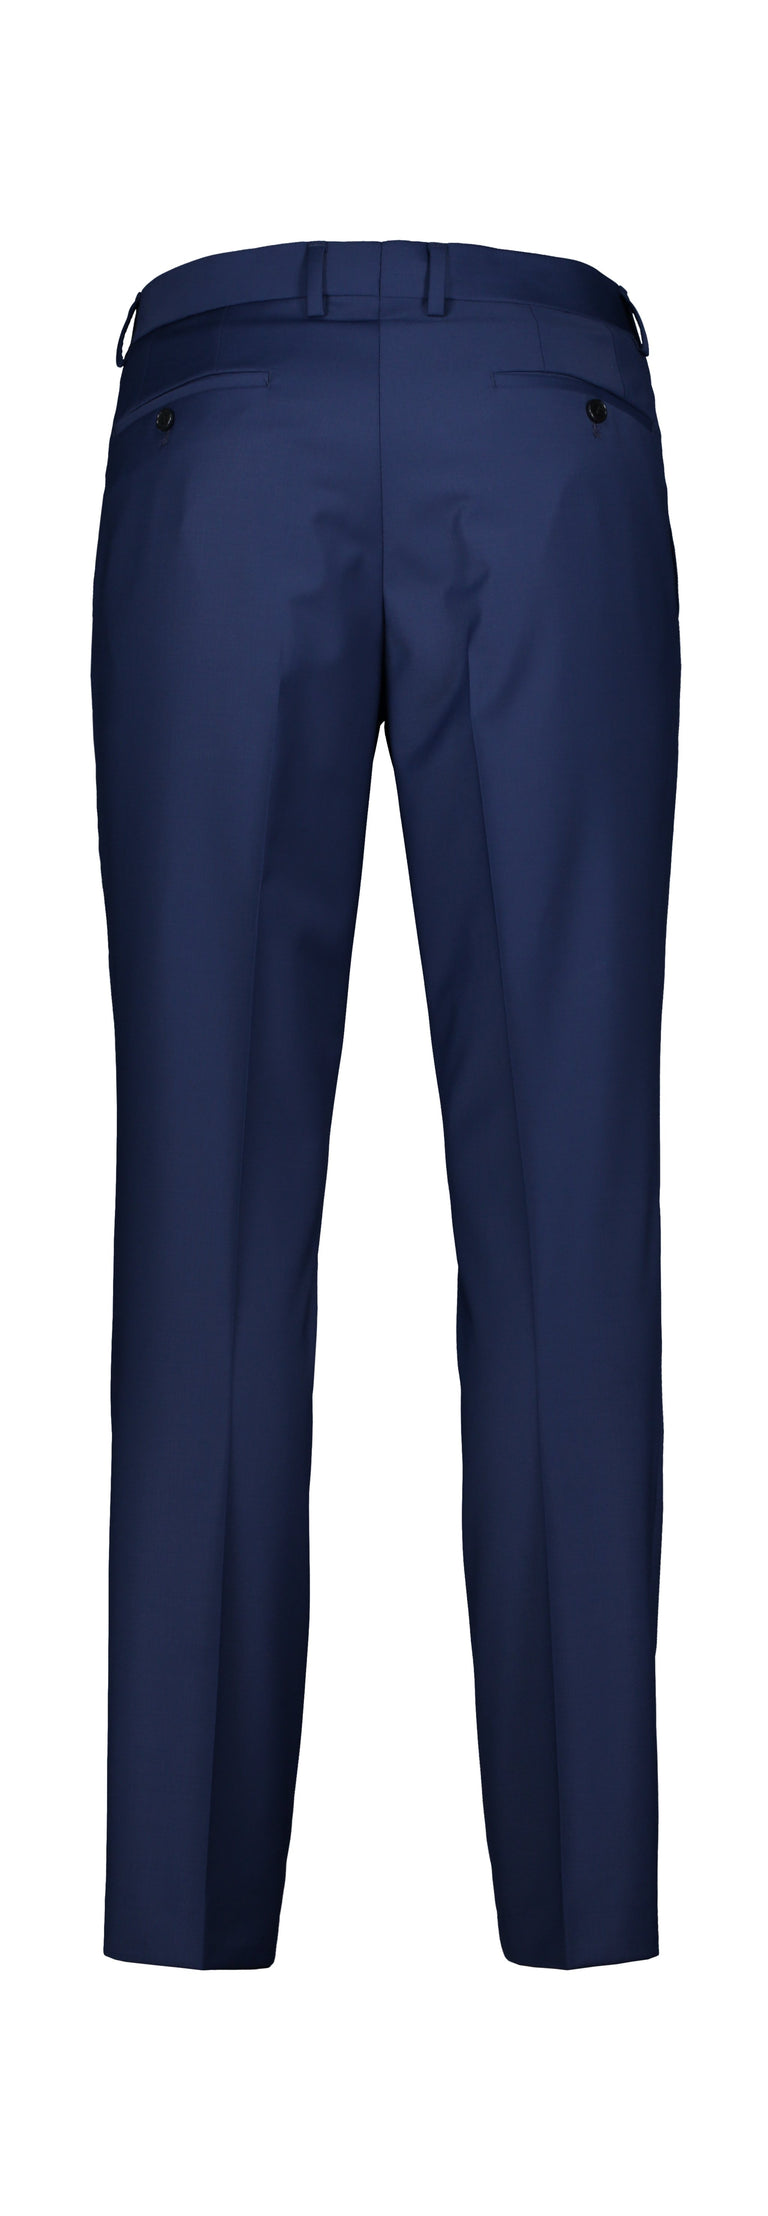 Extra slim fit trousers blue